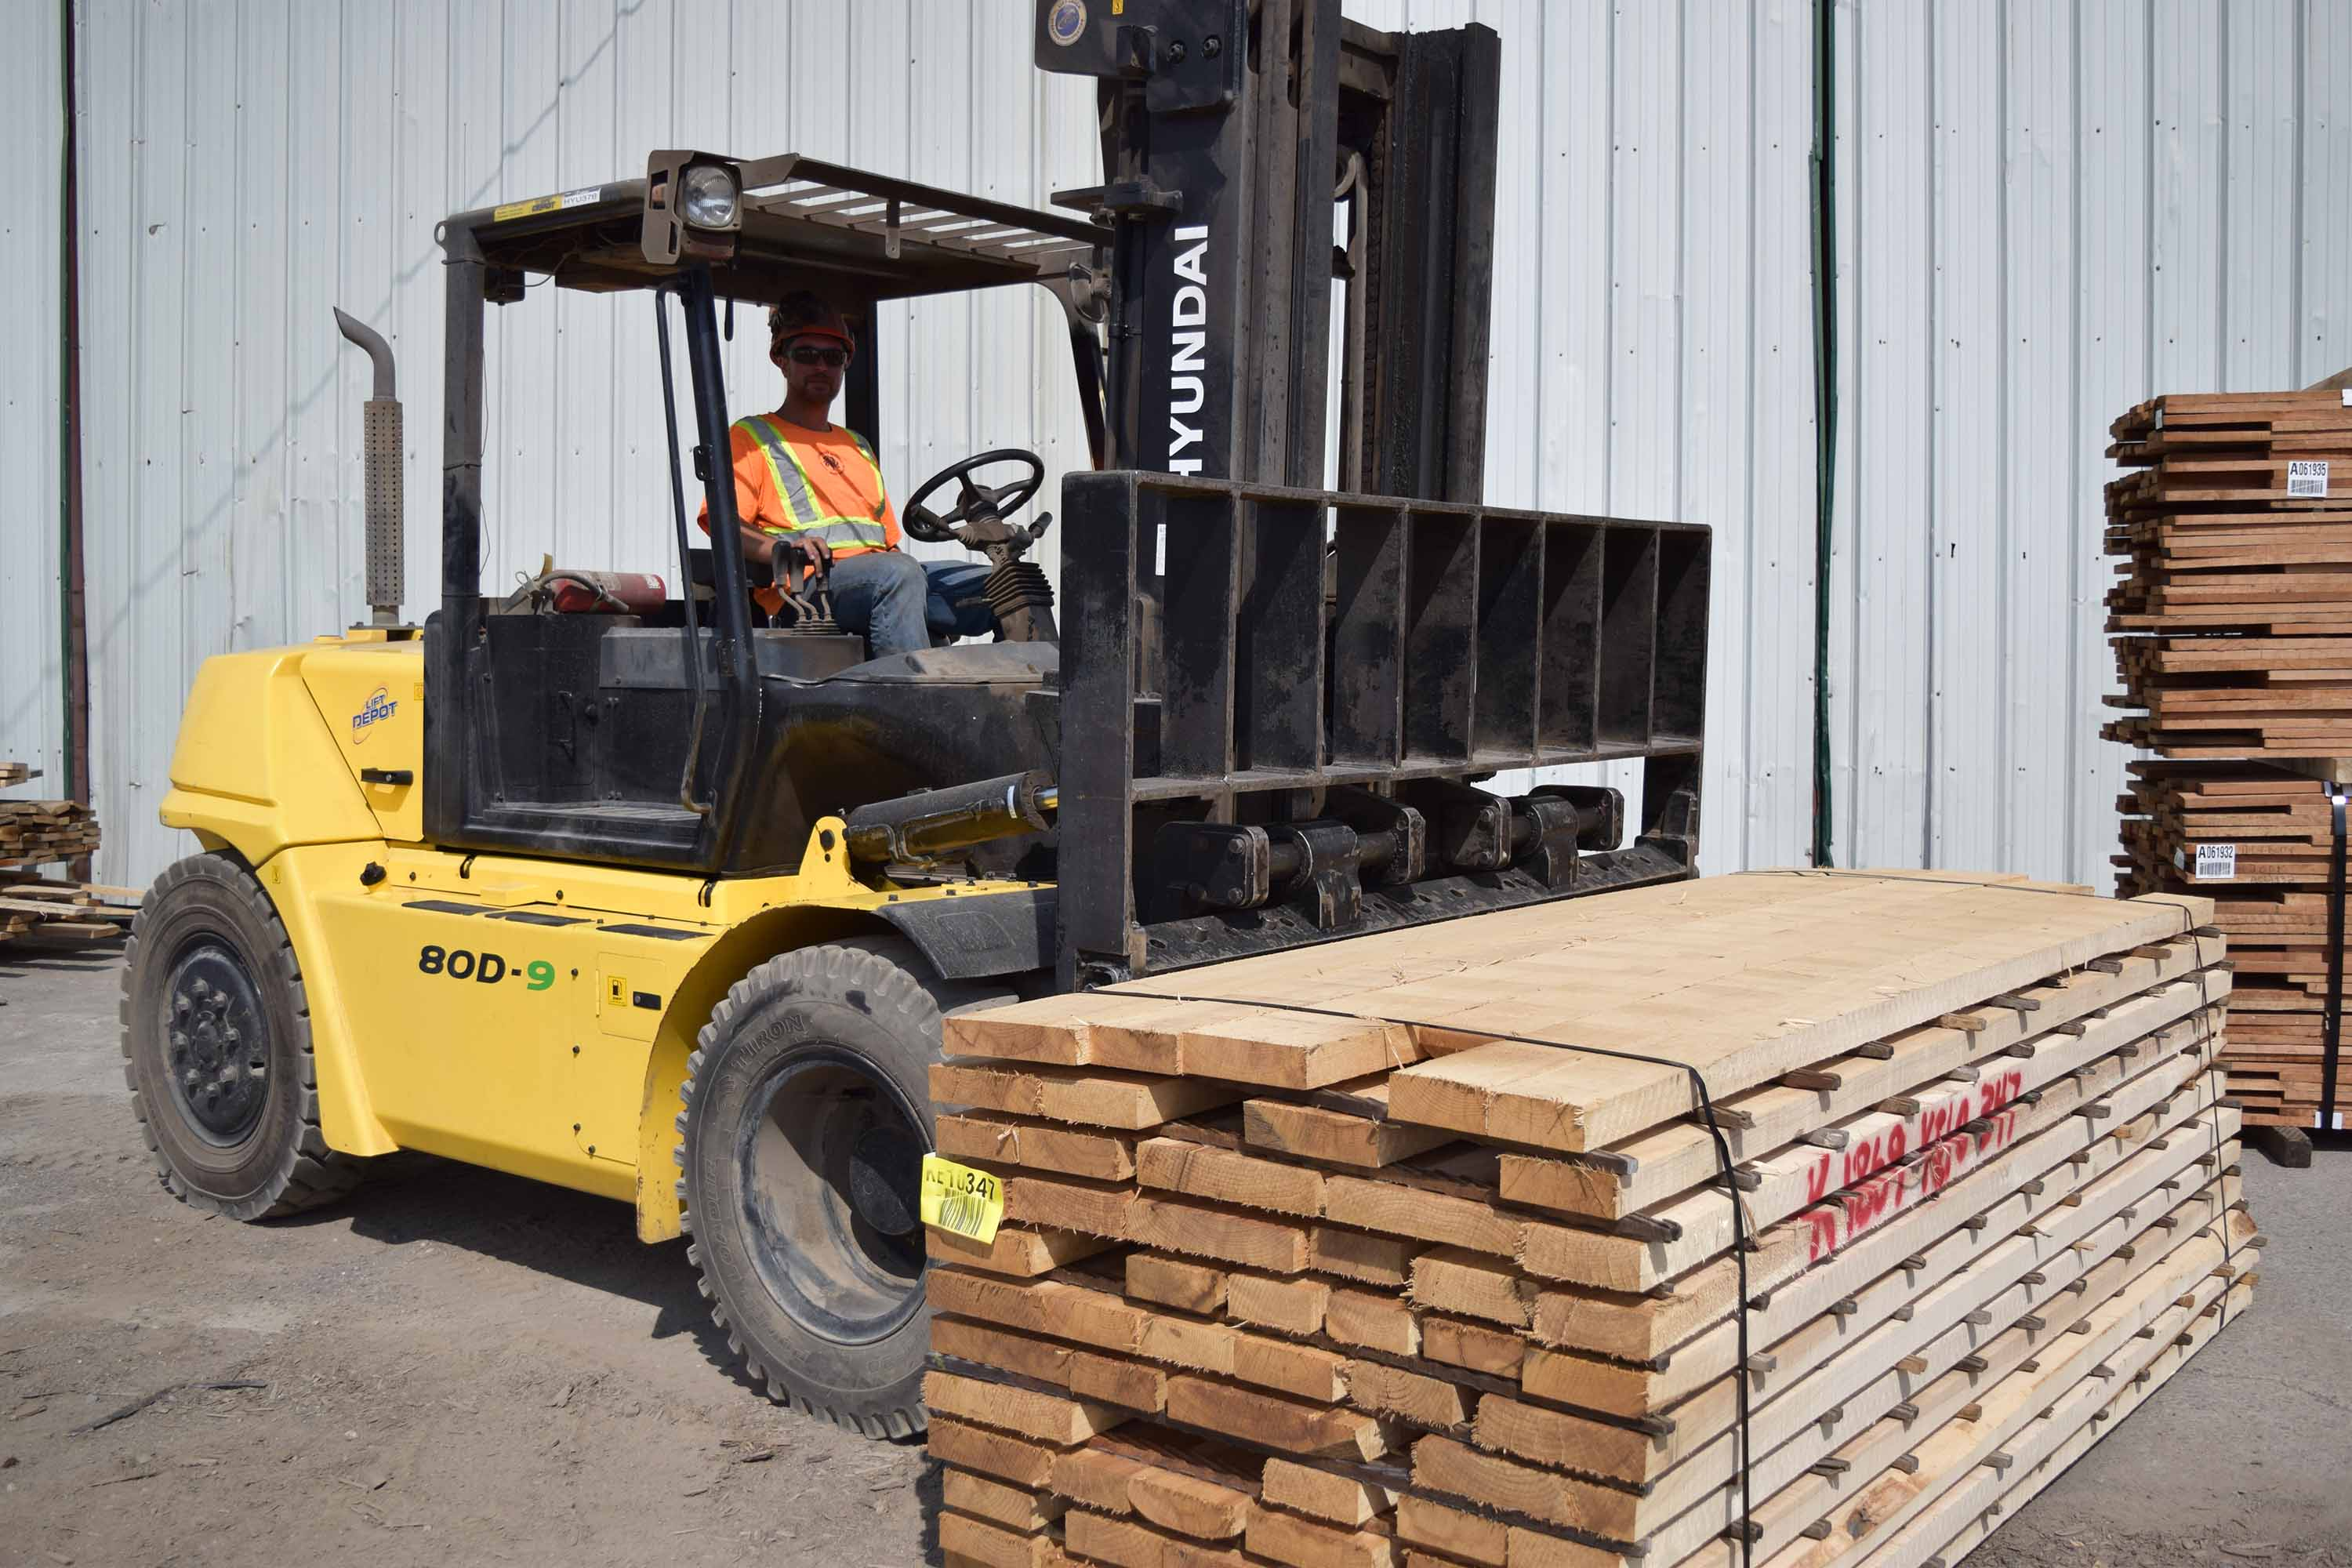 Forklift outside a wearhouse moving a large palette of lumber.